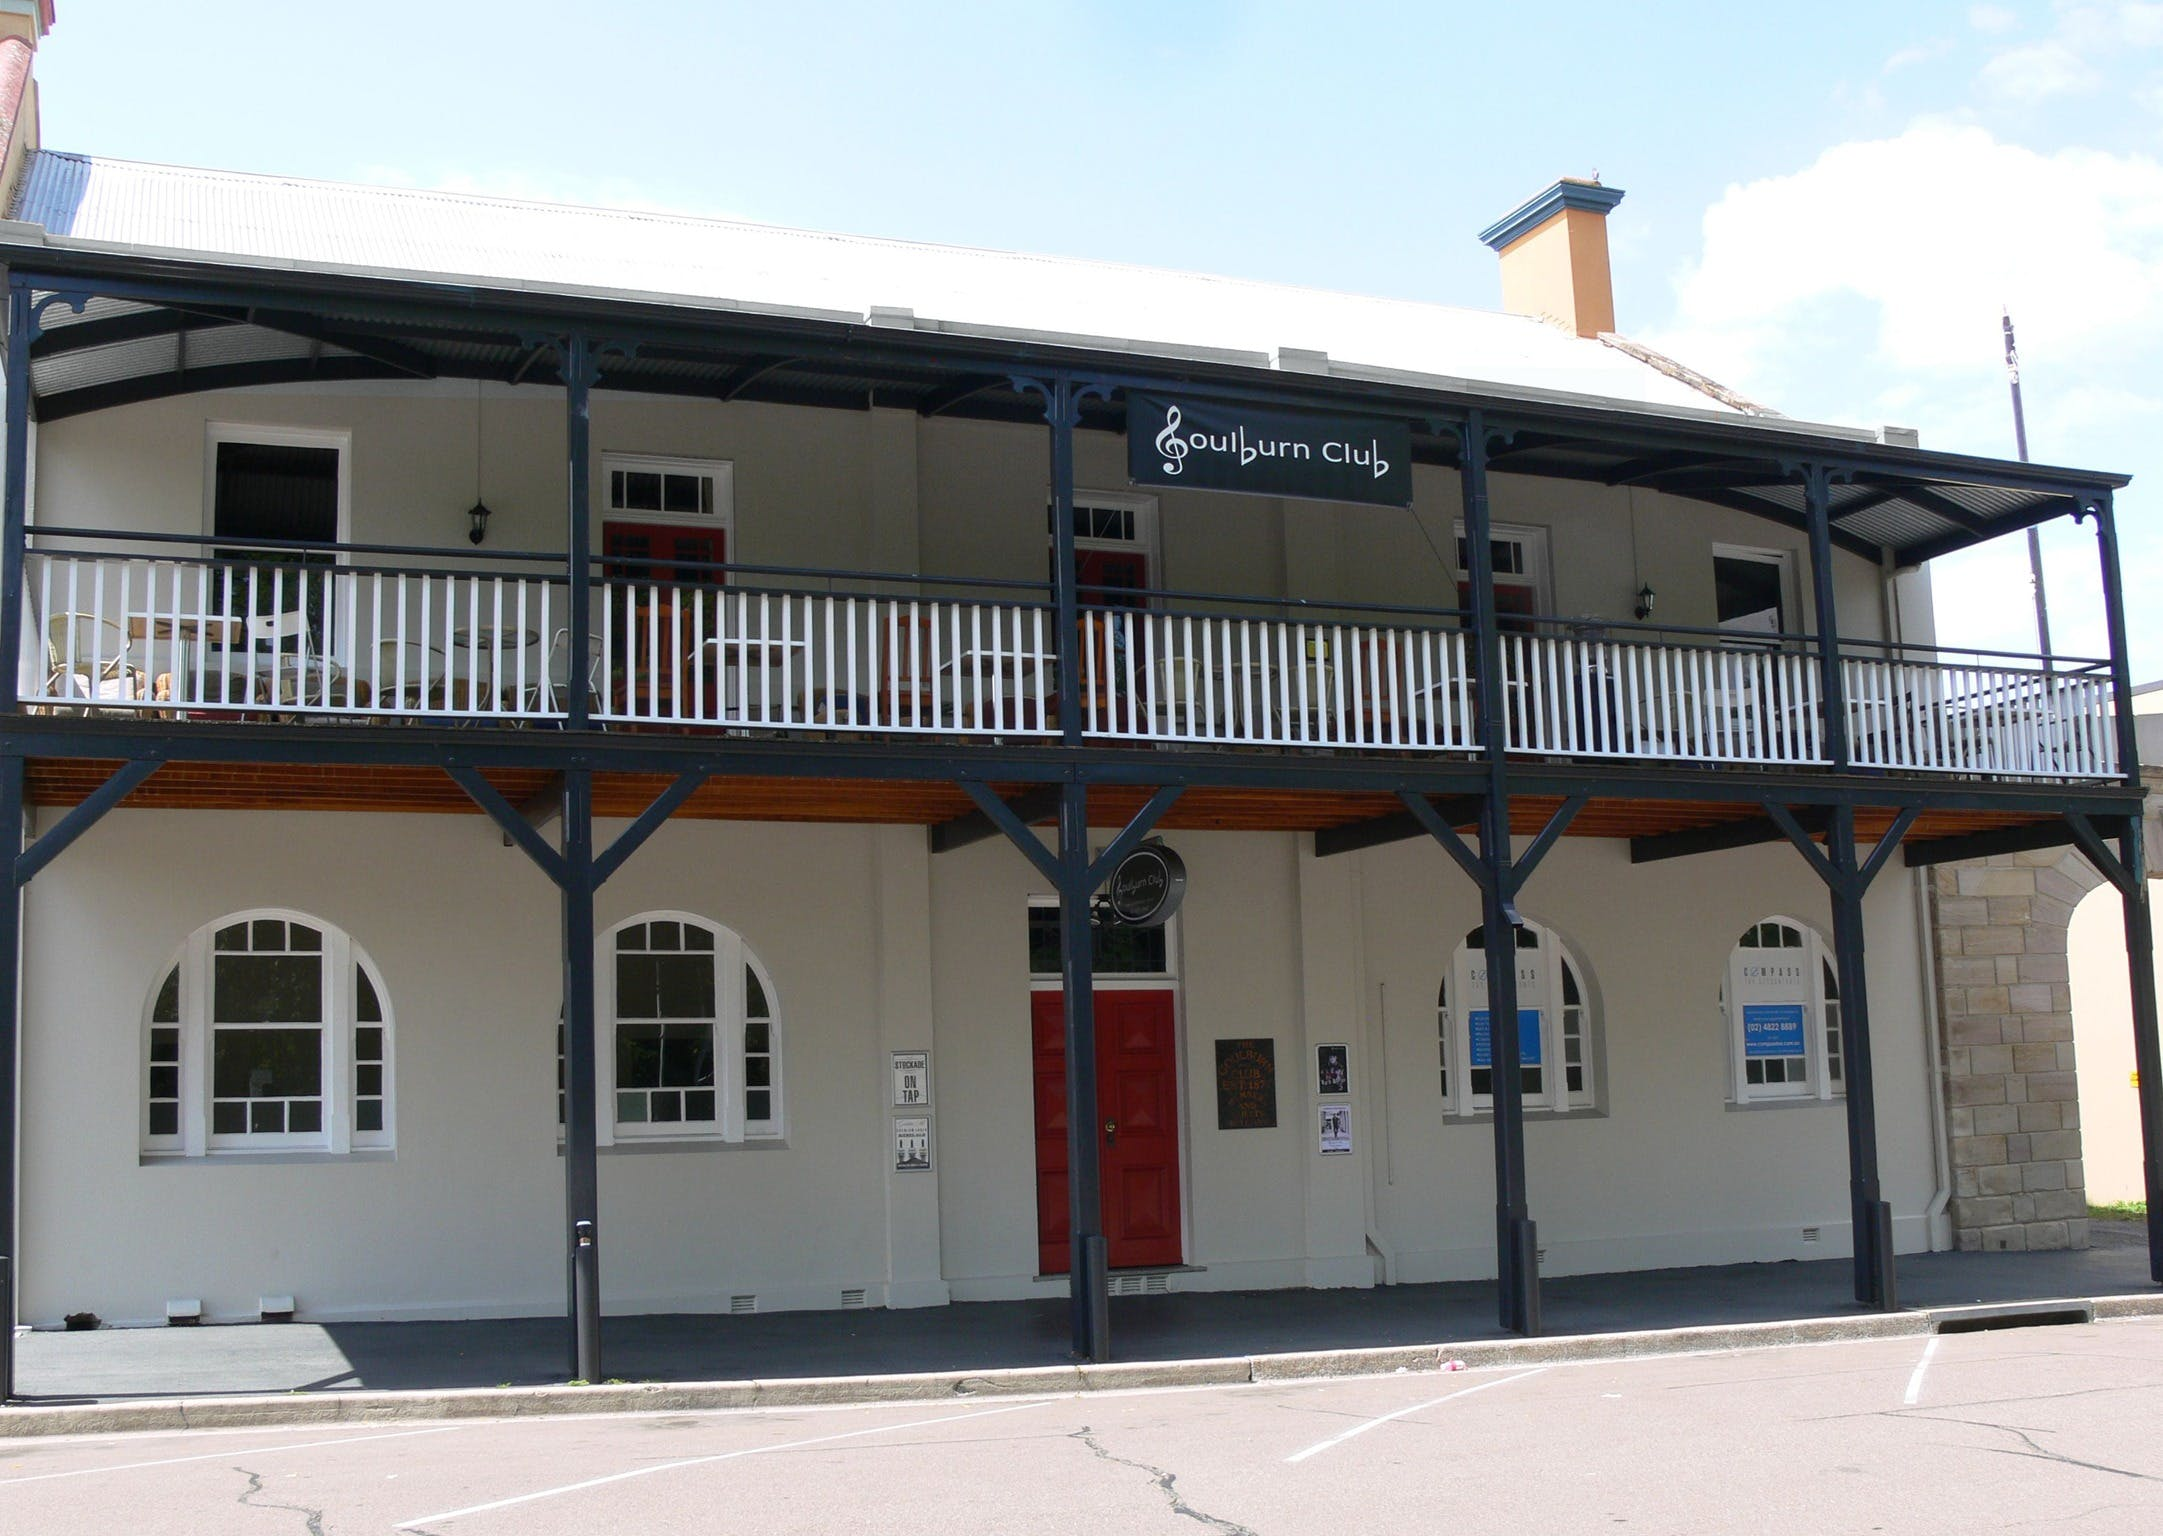 Open Mic Night at the Goulburn Club - Foster Accommodation